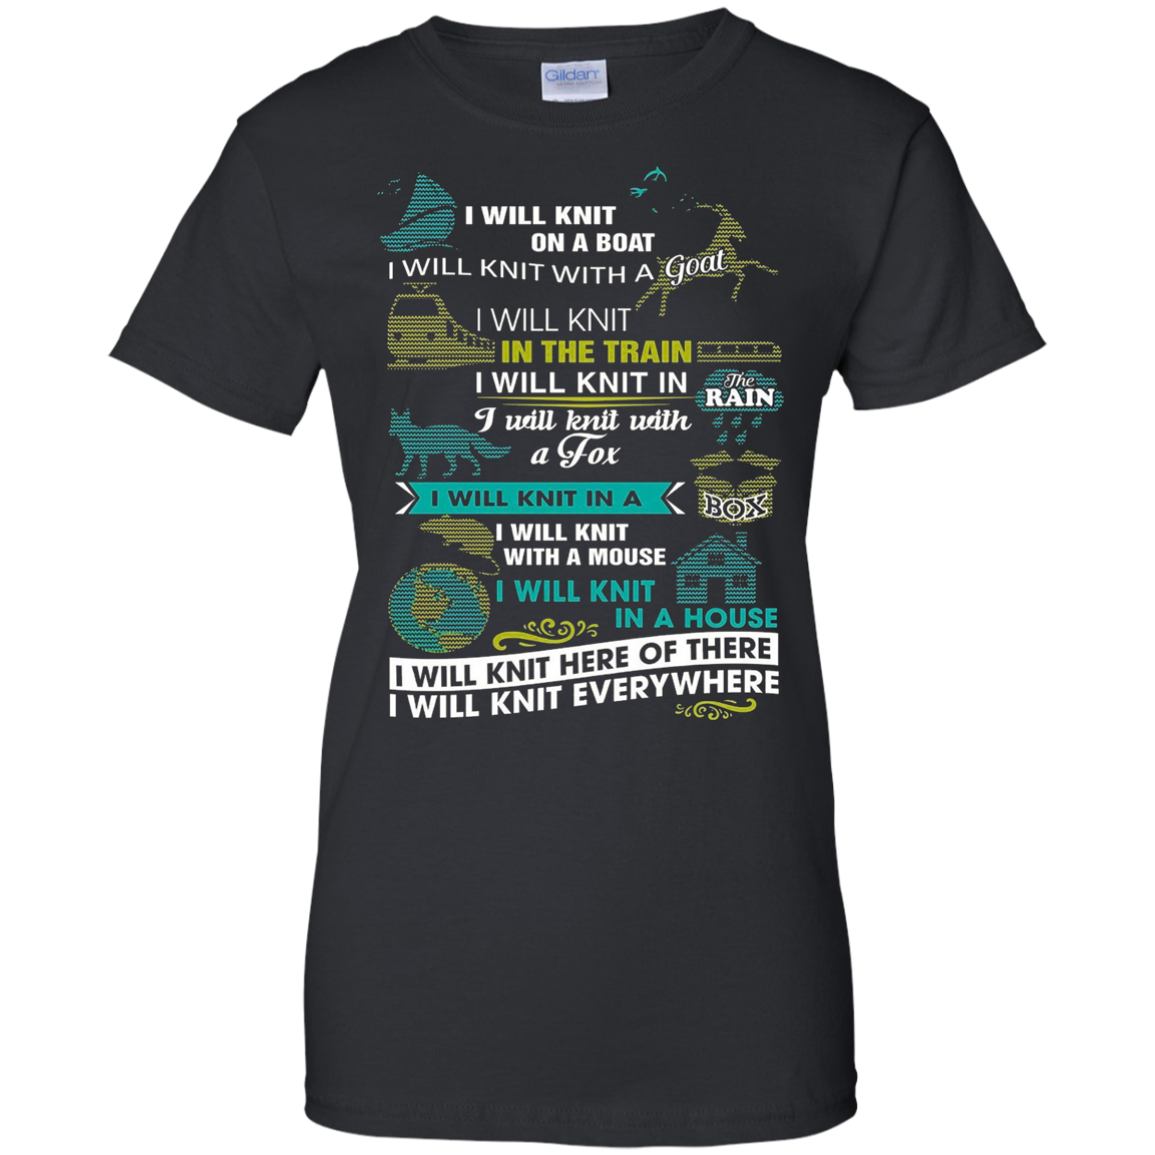 I WILL KNIT EVERYWHERE T-shirt